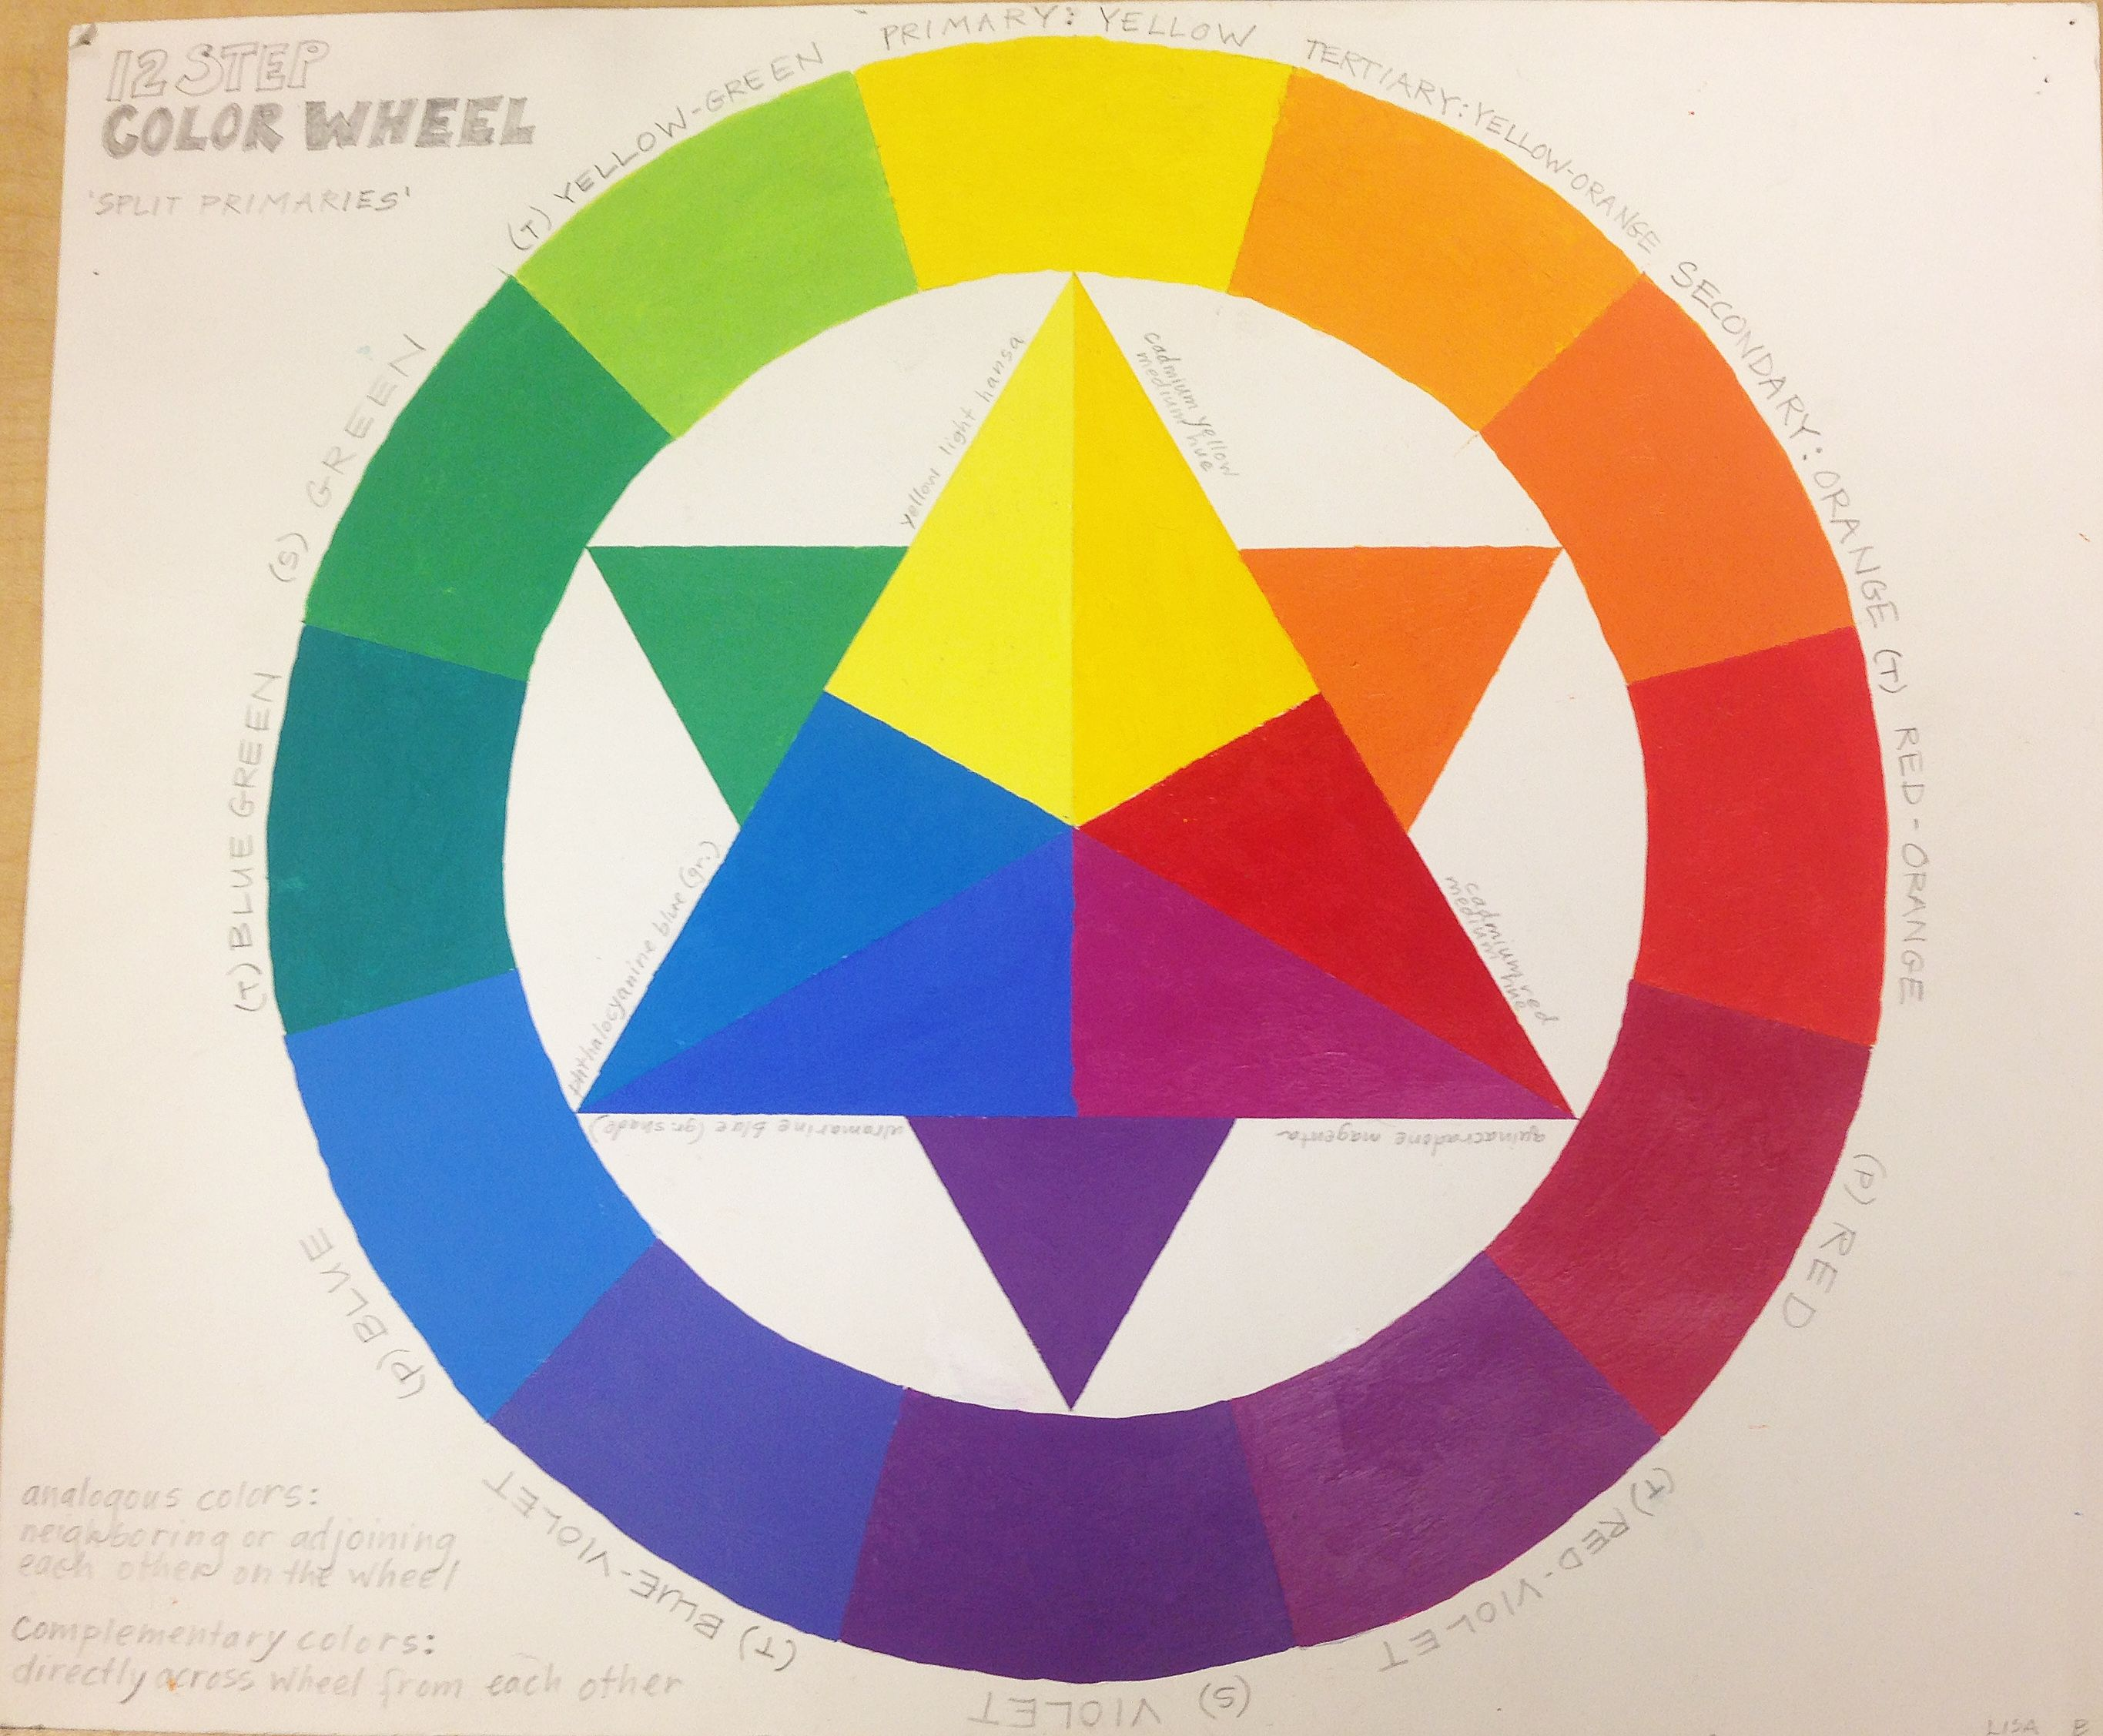 L Beerntsen Color Wheel For Srjc Color Class Reference For